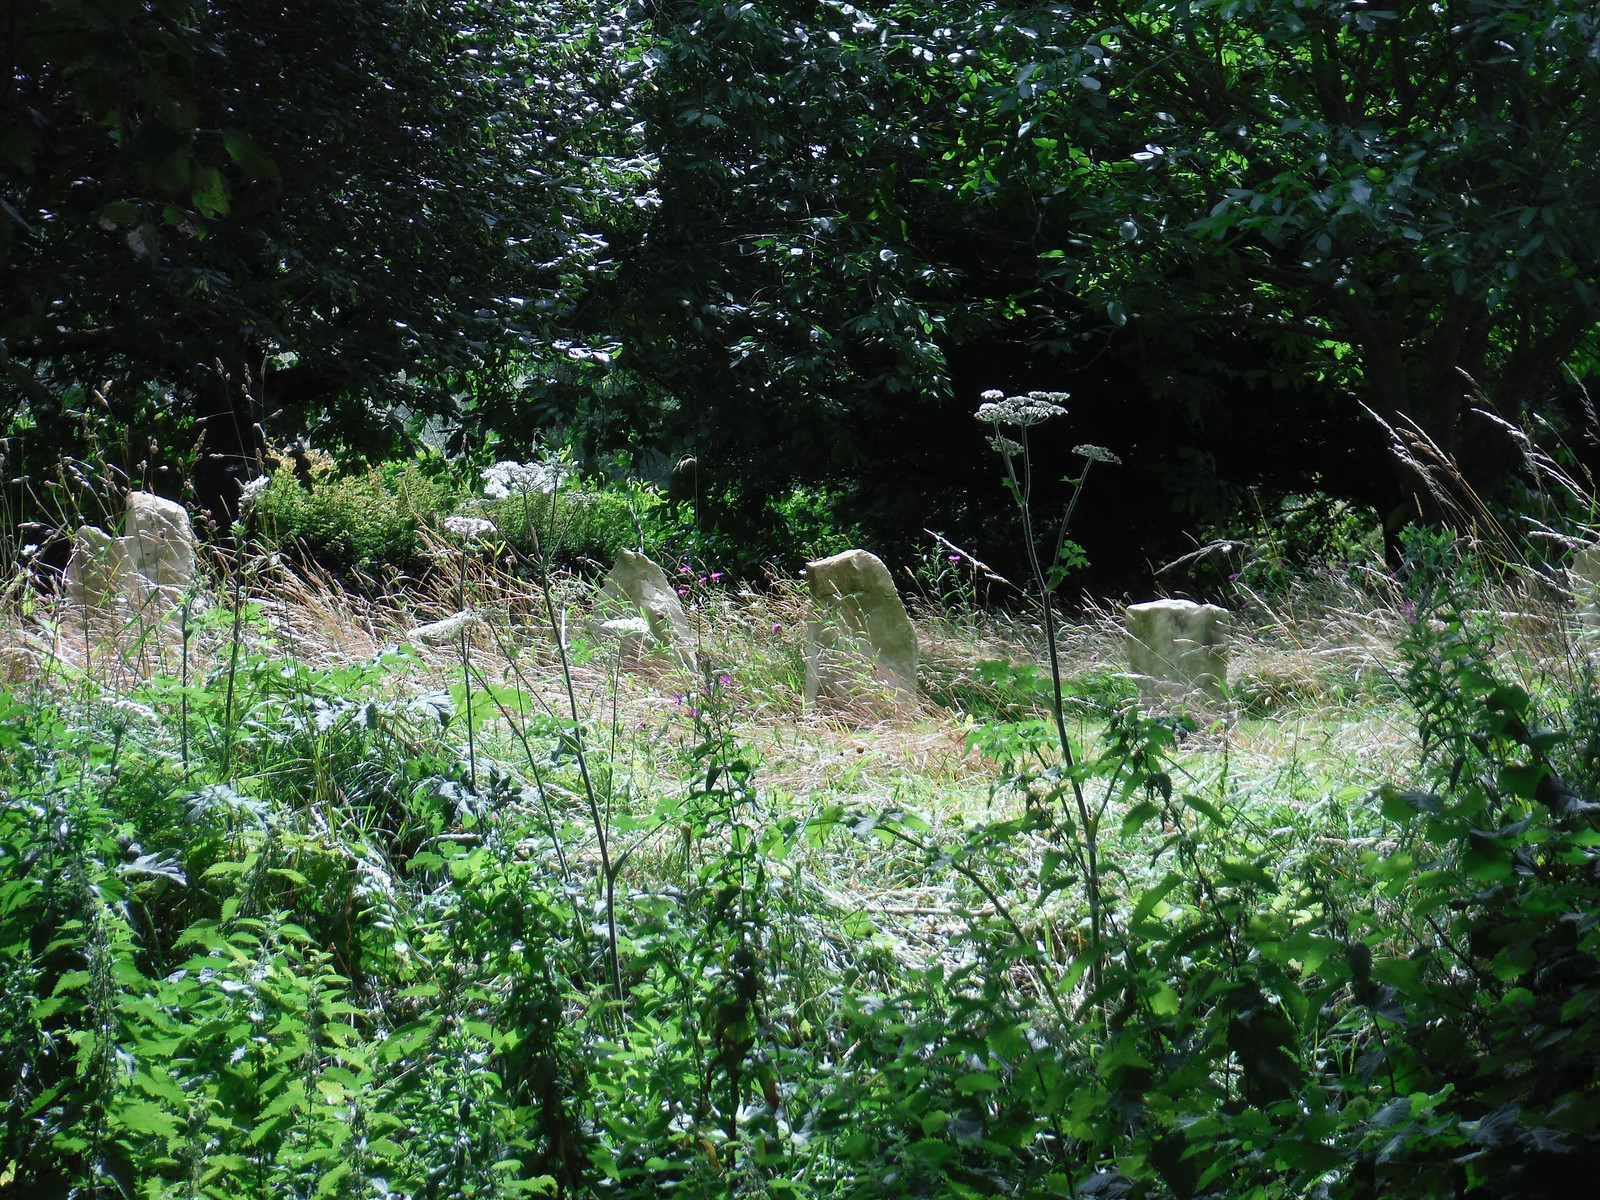 Standing Stone Circle amidst high grass, Donhead St. Andrew SWC Walk 252 Tisbury Circular via Donhead St. Andrew